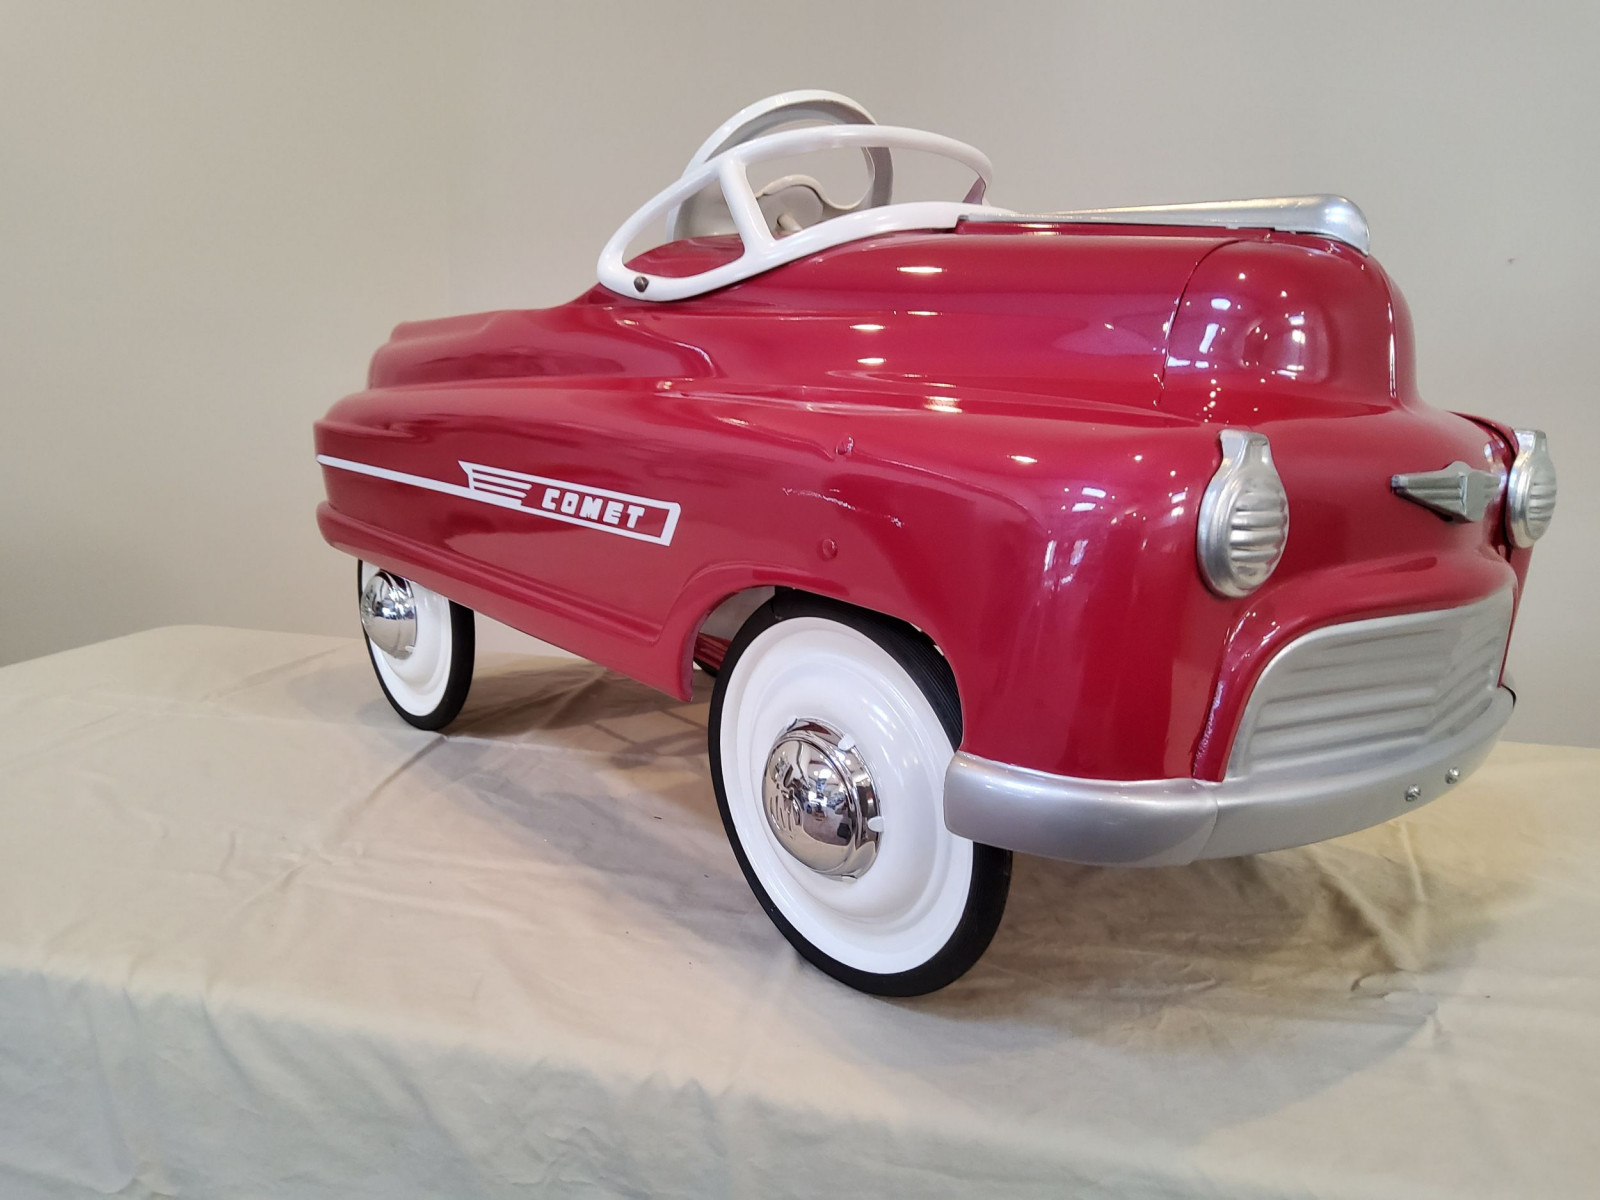 1949-54 Murray Comet Pedal Car - Image 6